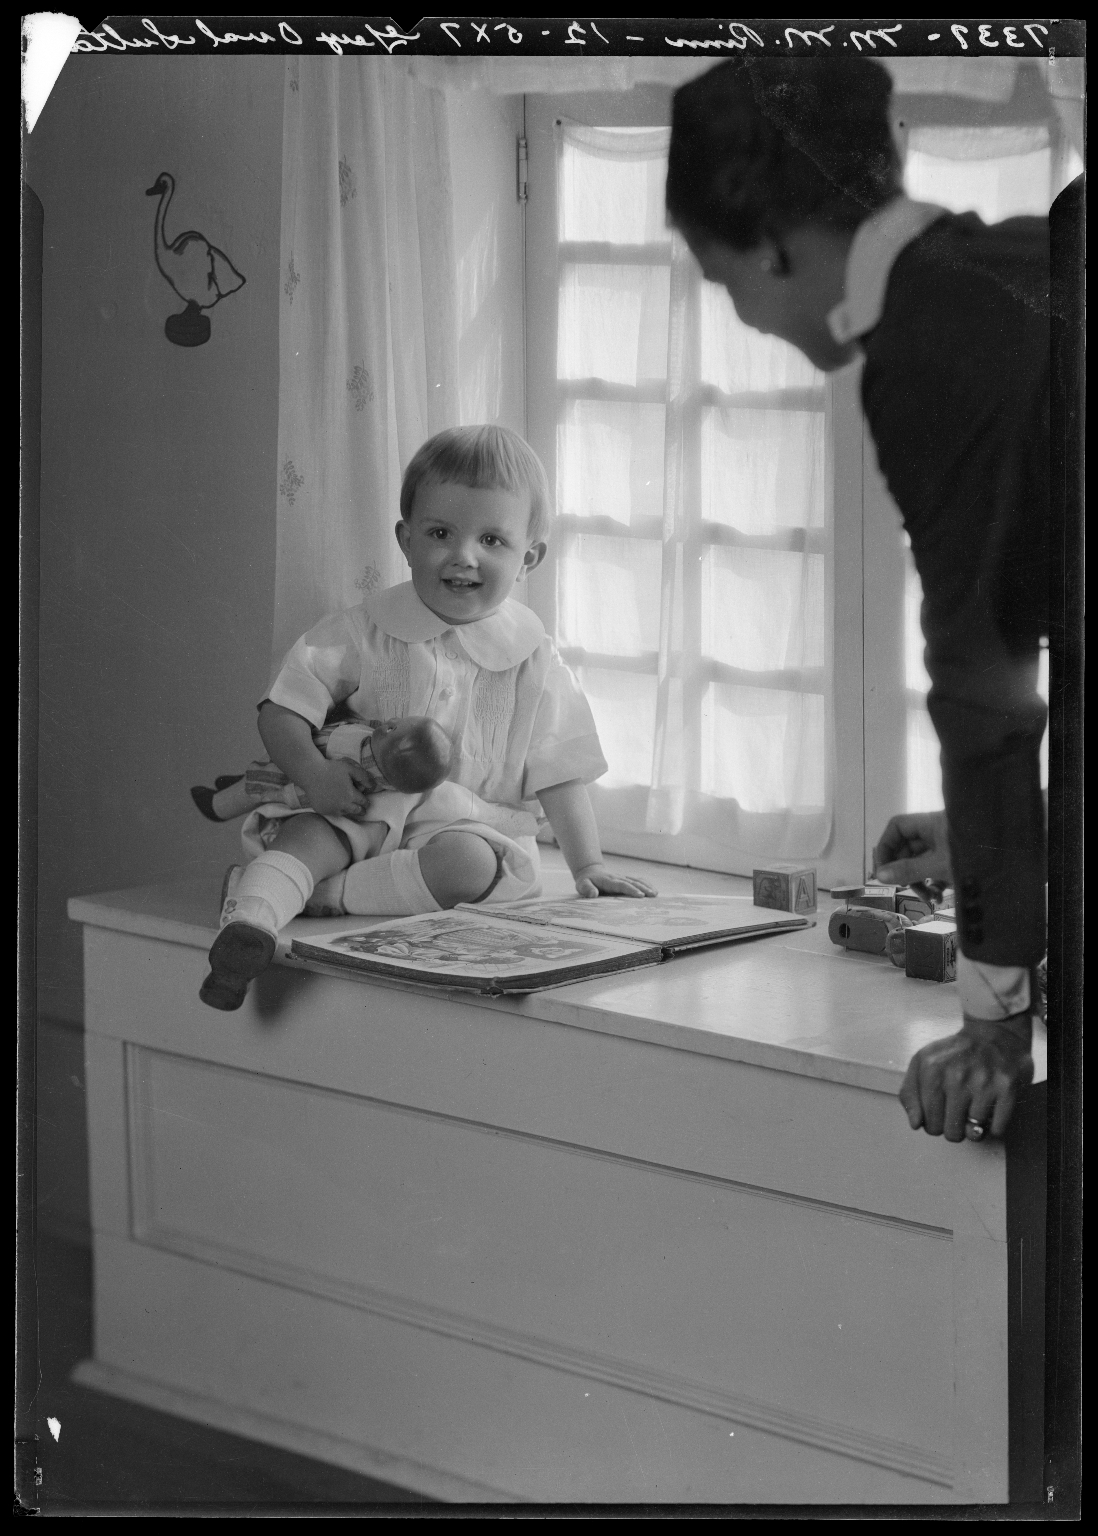 Portraits of Mrs. Mike Rinn and child